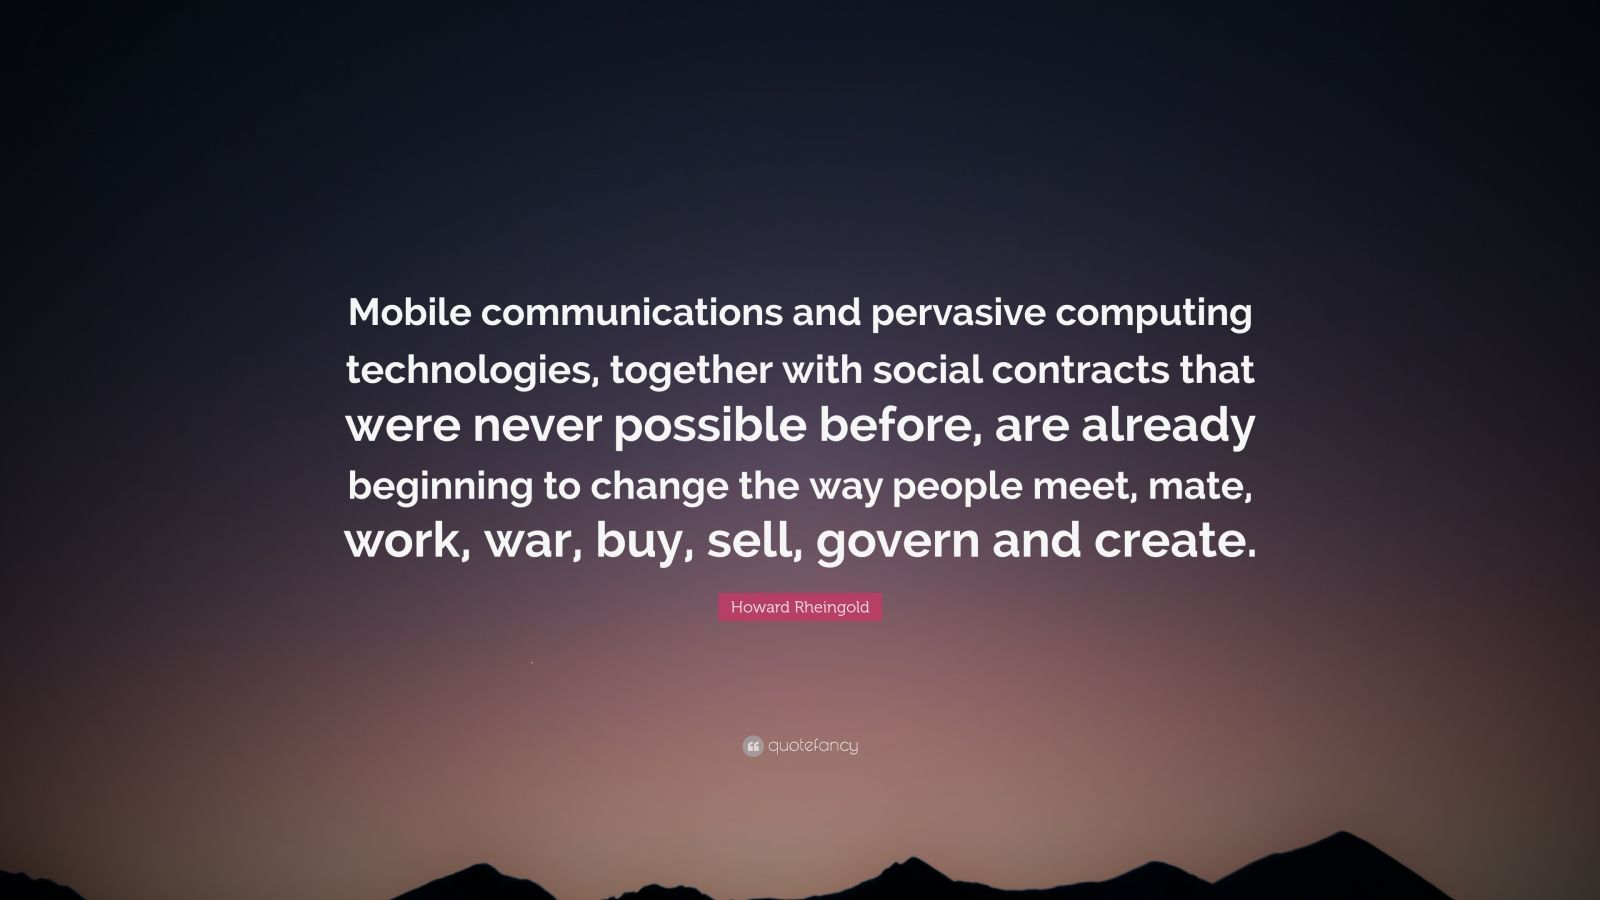 "Howard Rheingold Quote: ""Mobile communications and pervasive computing technologies, together with social contracts that were never possible before, are already beginning to change the way people meet, mate, work, war, buy, sell, govern and create."""